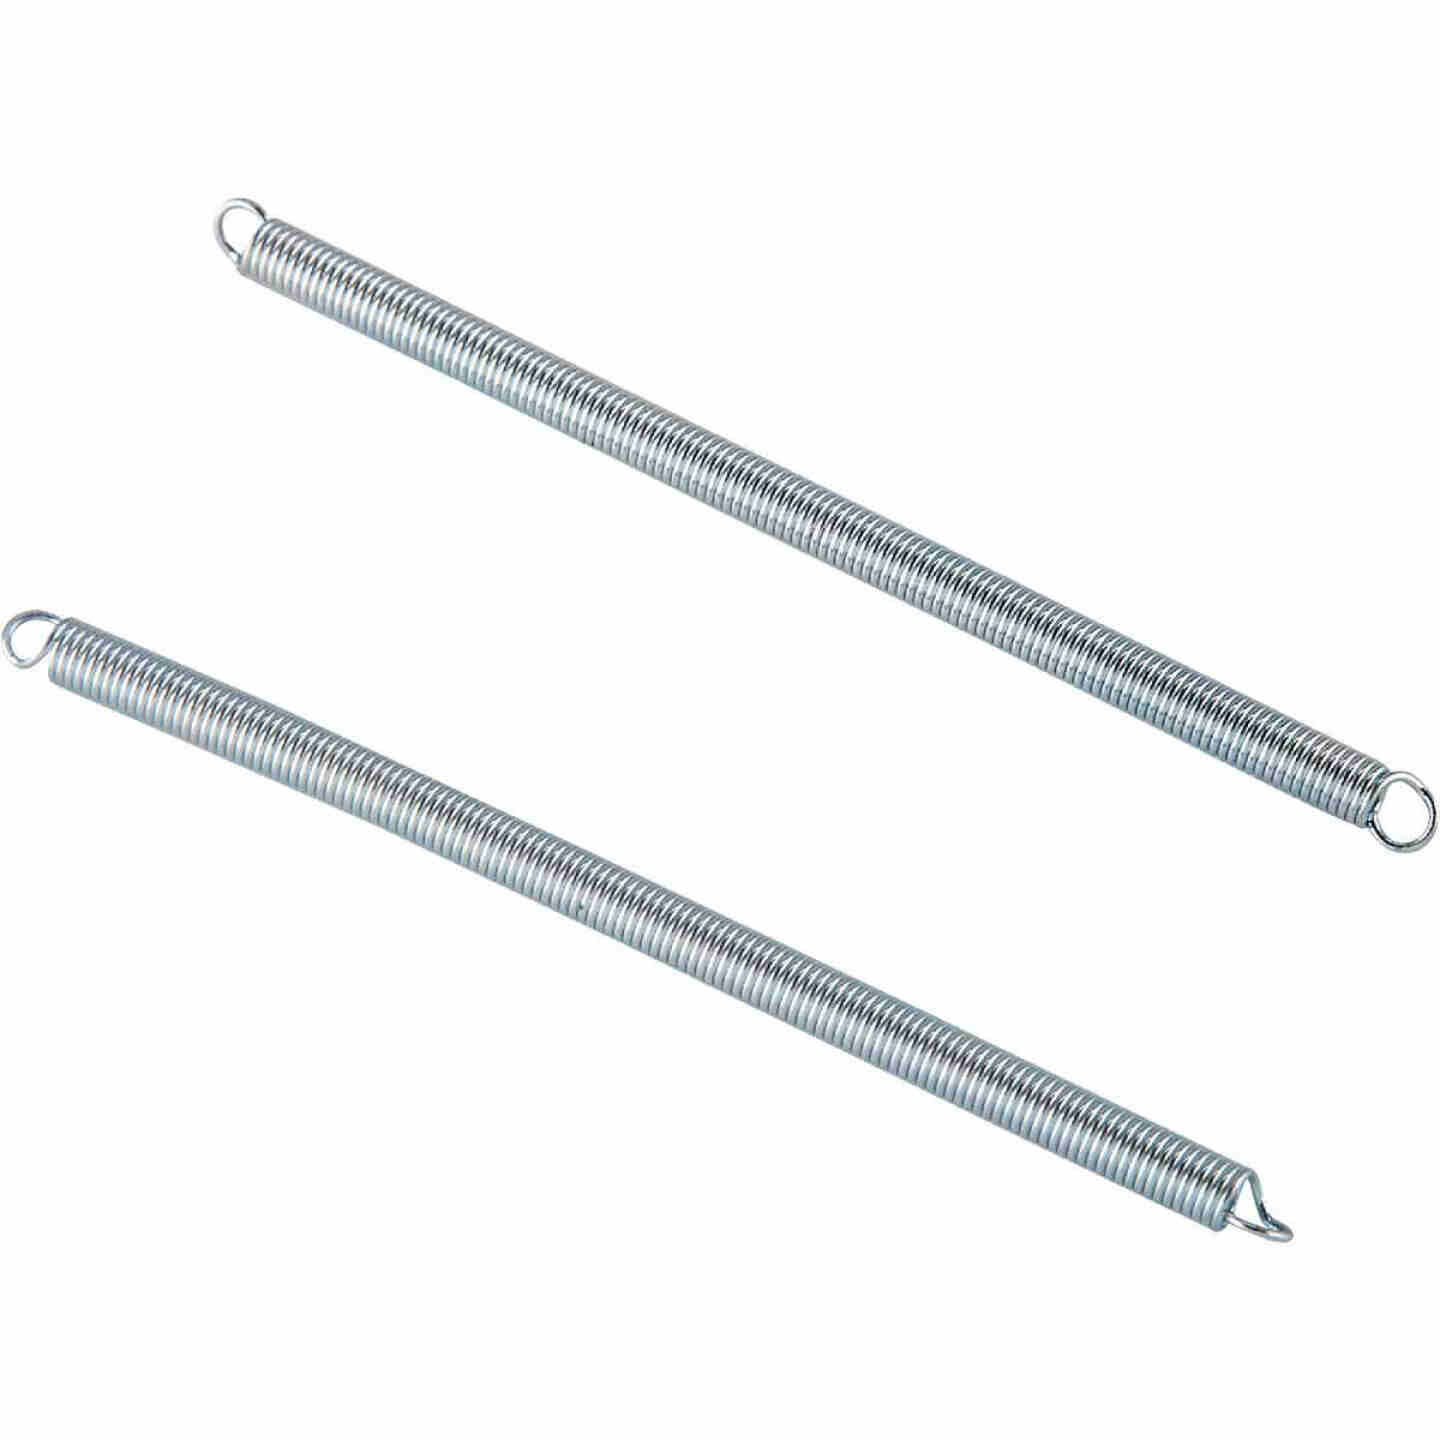 Century Spring 1-1/2 In. x 7/16 In. Extension Spring (2 Count) Image 1